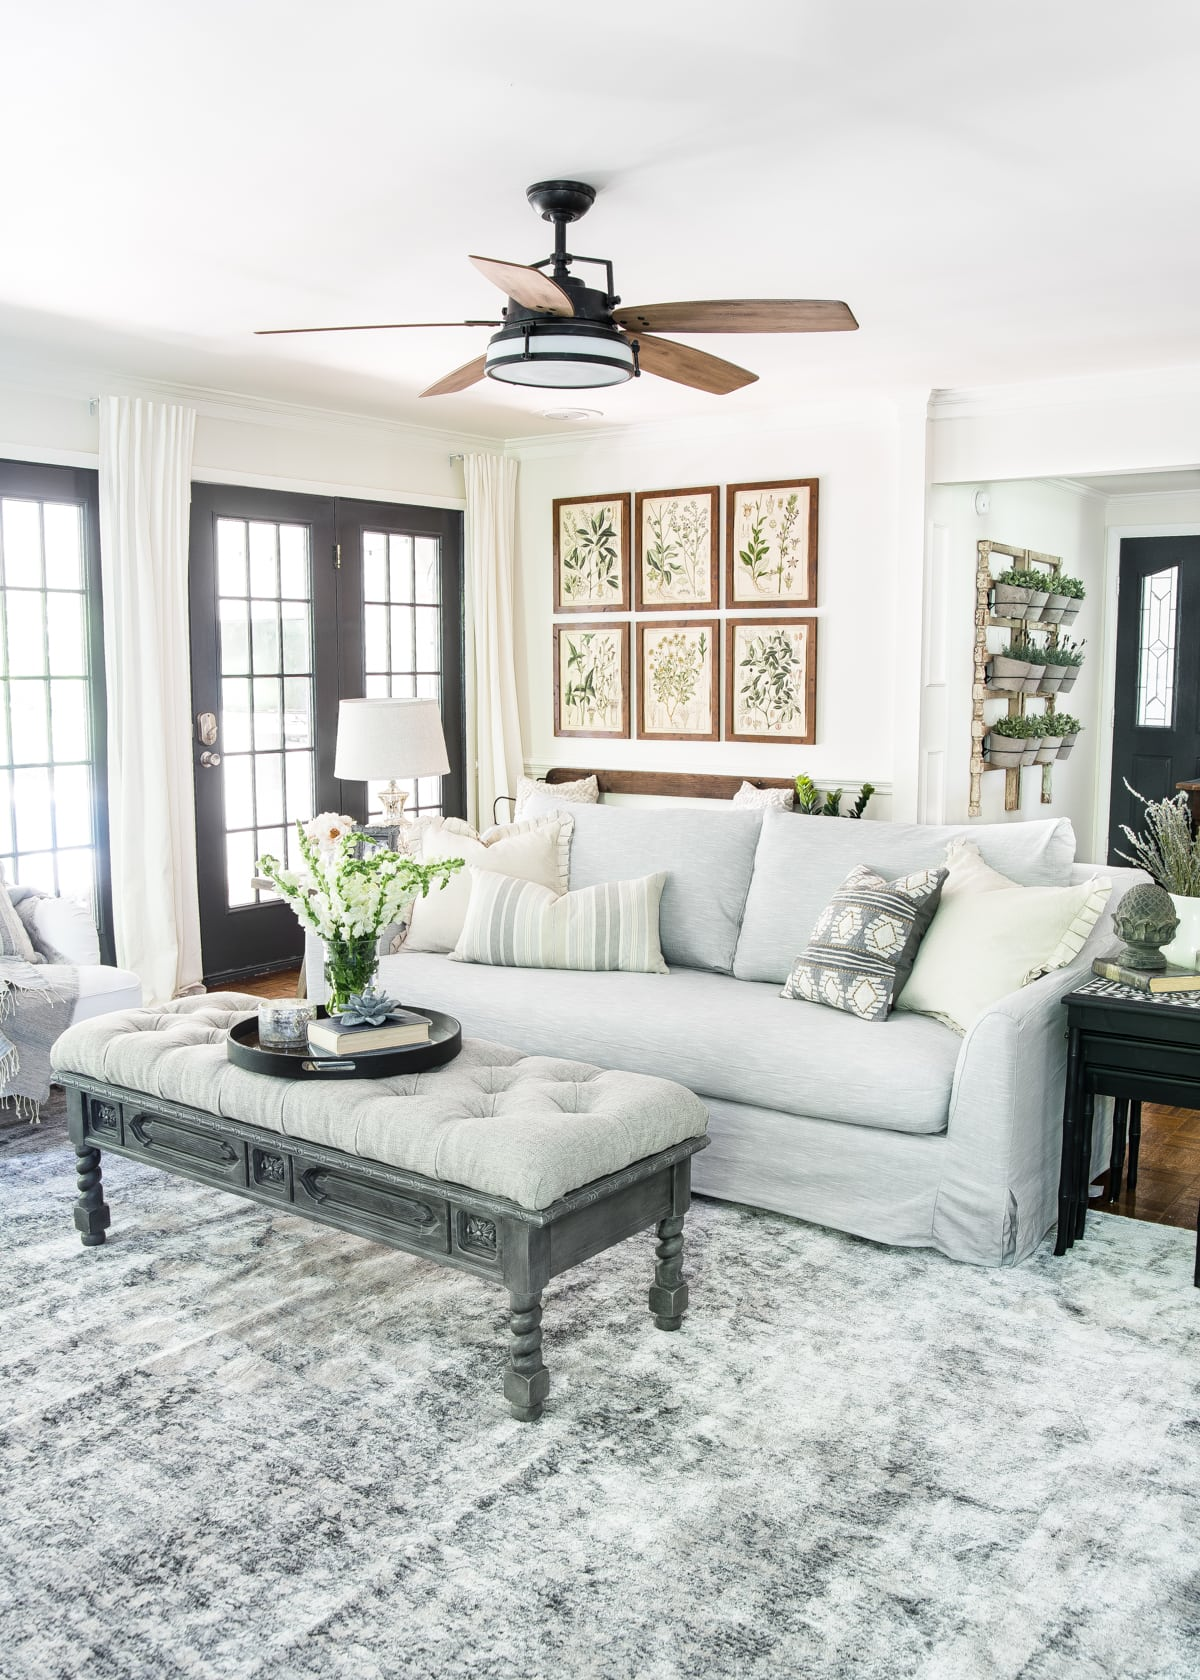 12 of the most common decorating mistakes most people make when choosing paint colors, furniture layouts, and styling, and tips on how to avoid them. #decorating #decoratingmistakes #decoratingtips Stick to no more than 3 prints/patterns in fabrics.